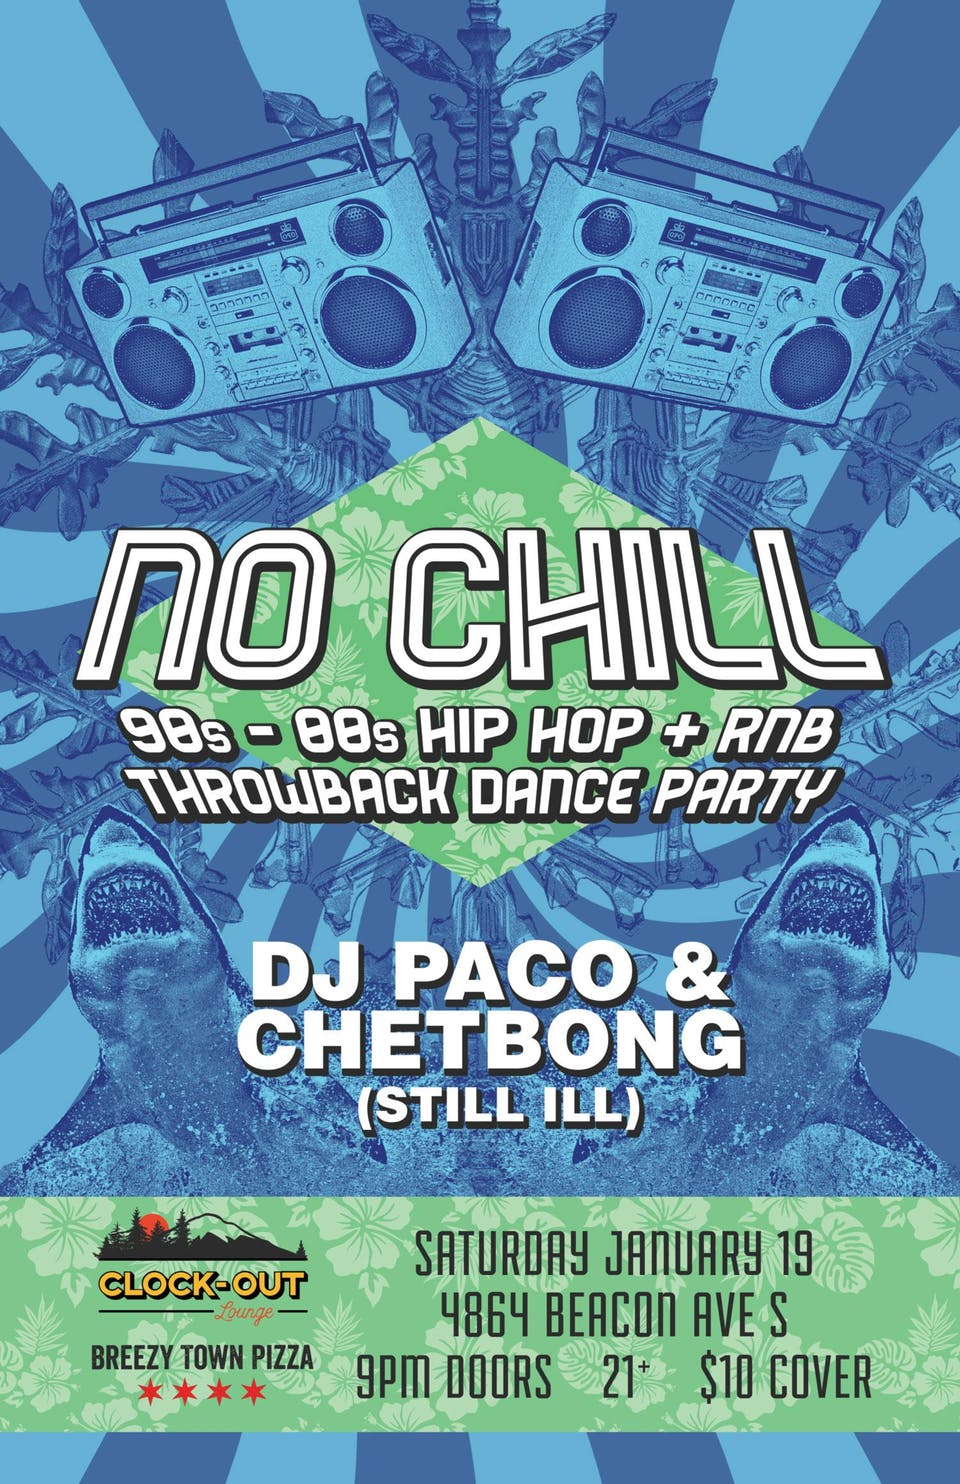 No Chill 90's- 00s Hip Hop + RNB Dance Party